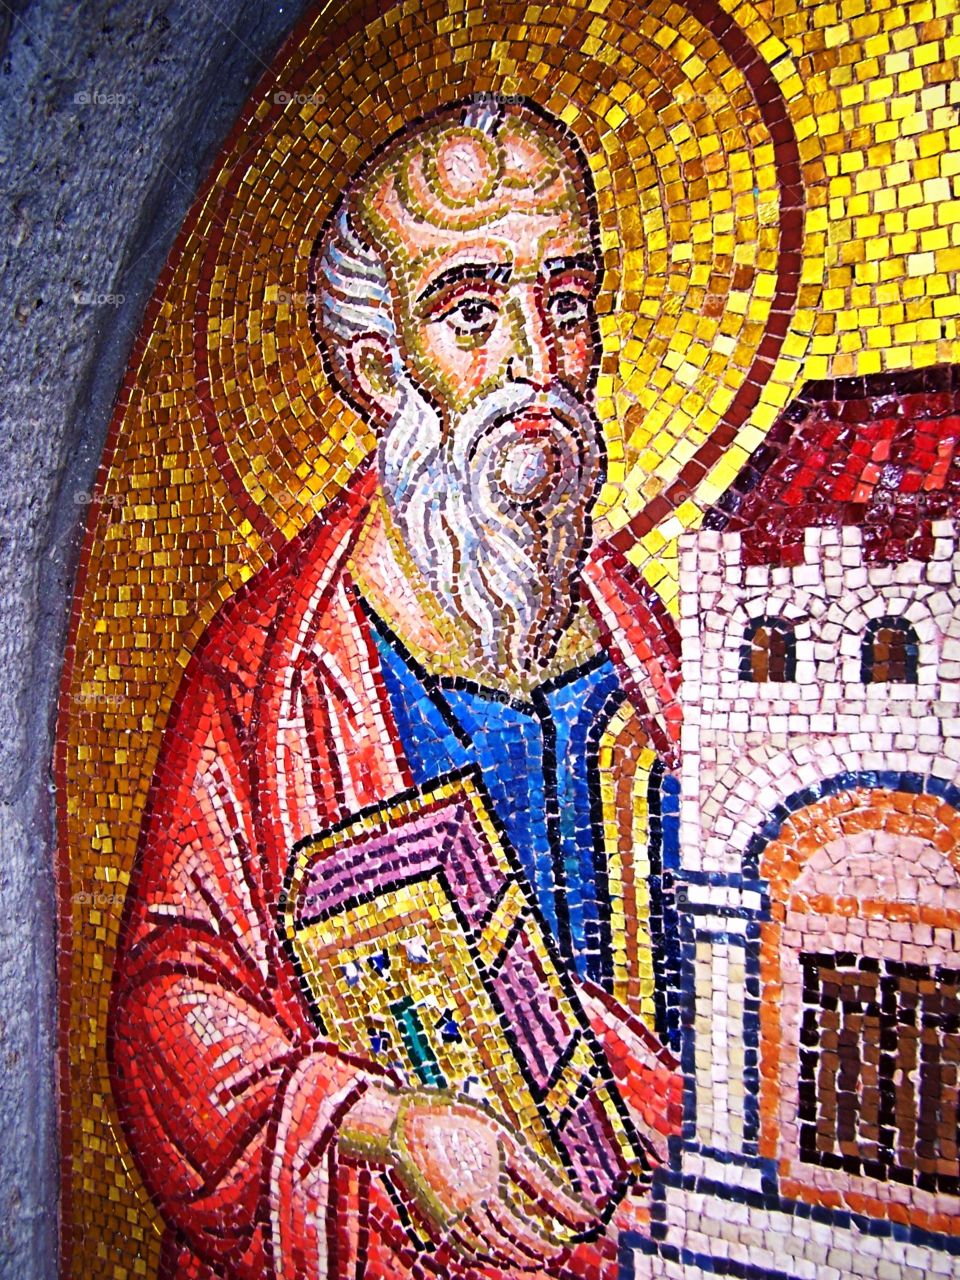 Mosaic of Saint John in a Grotto on the Isle of Patmos in Greece